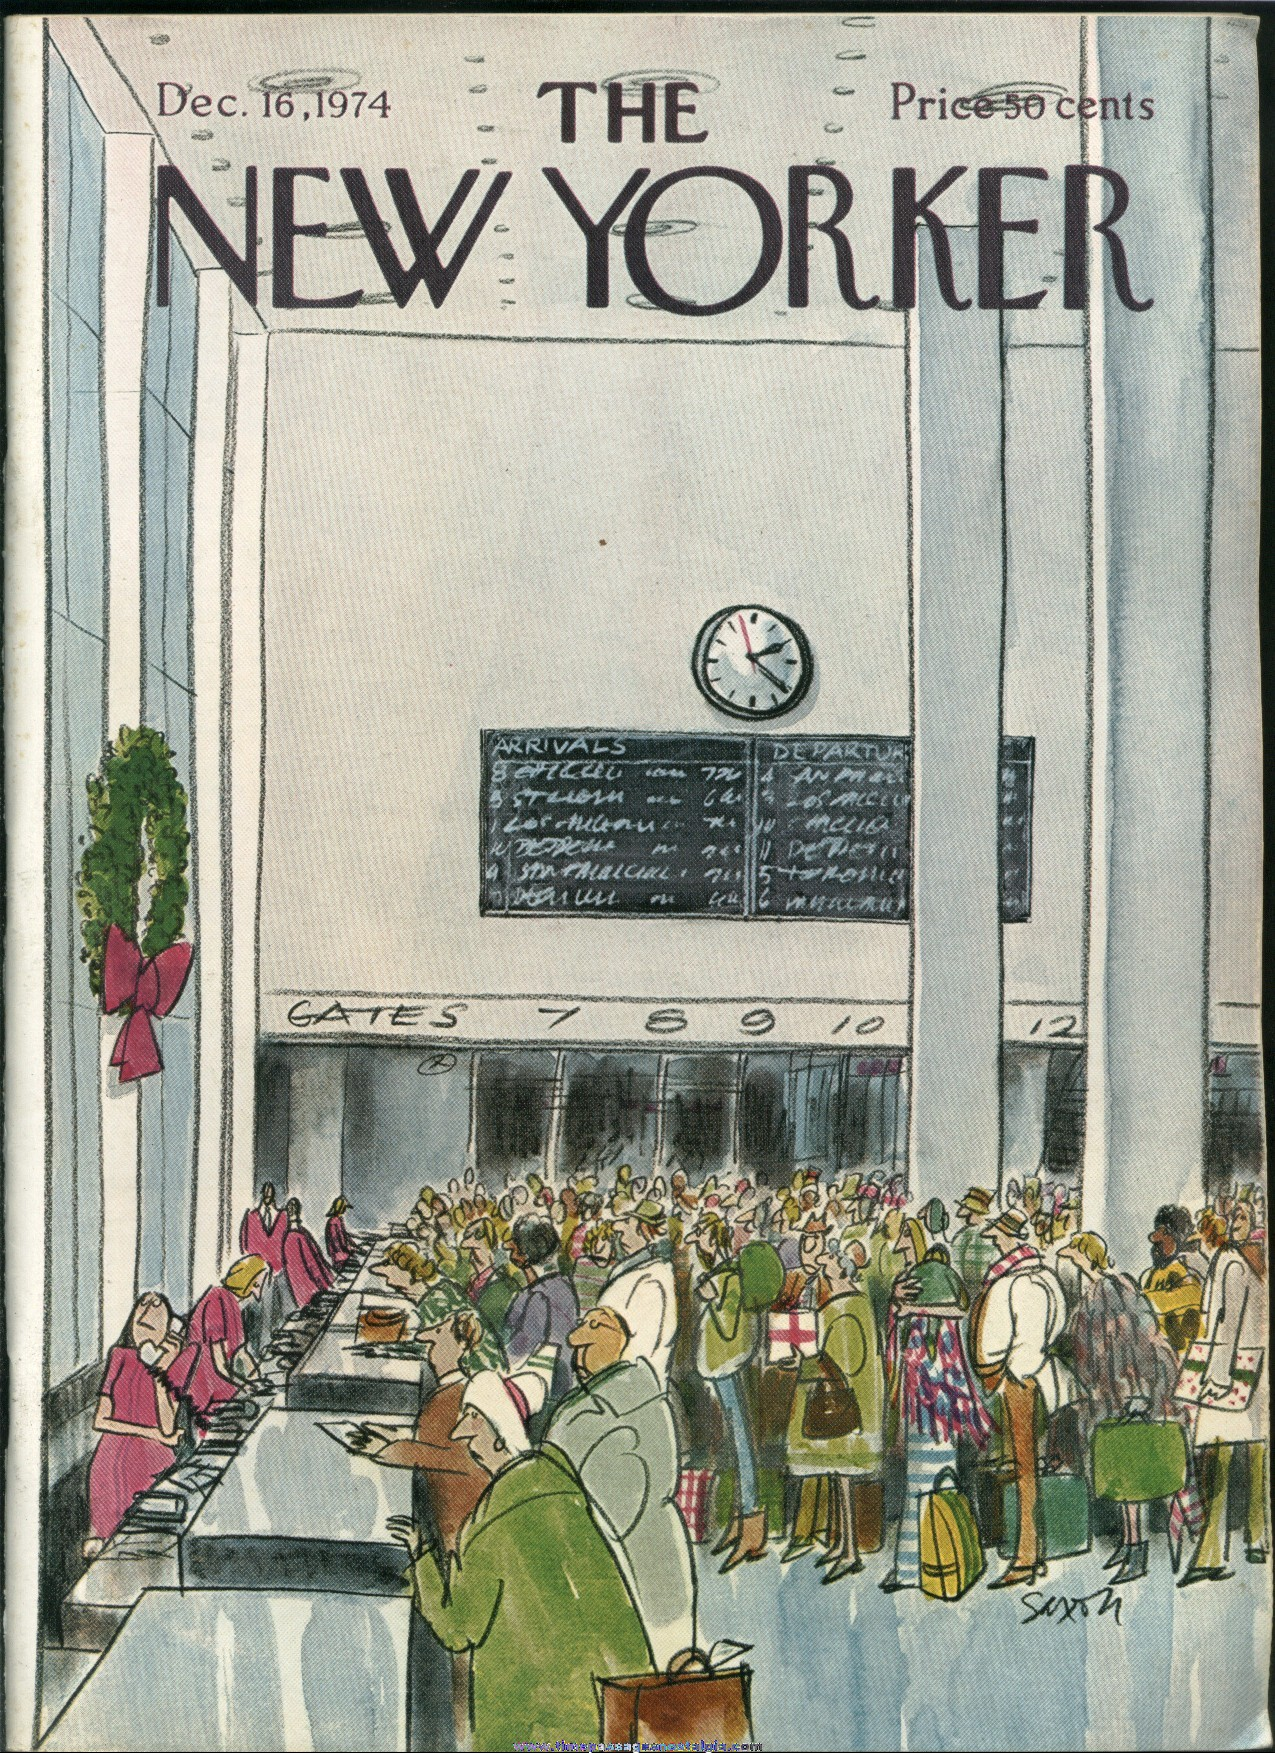 New Yorker Magazine - December 16, 1974 - Cover by Charles Saxon